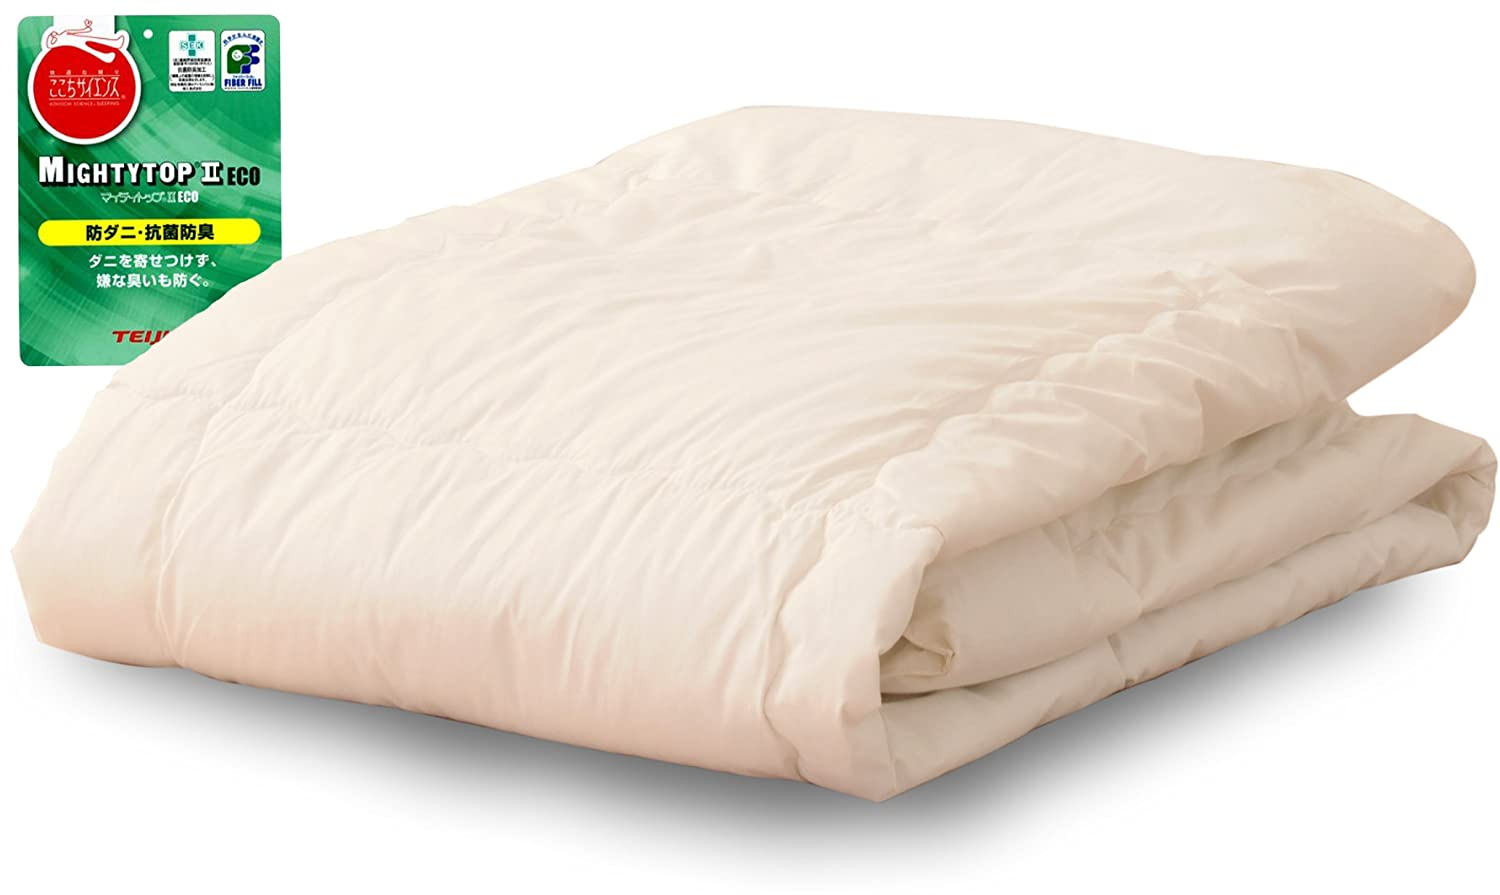 EMOOR Anti-ticked anti-bacterial and deodorized Comforter with Chemical-free Anti-mite fabric CLASSE-ZERO SUPER-LIGHT, Polyester (Filling & Fabric), Twin Size, Made in Japan